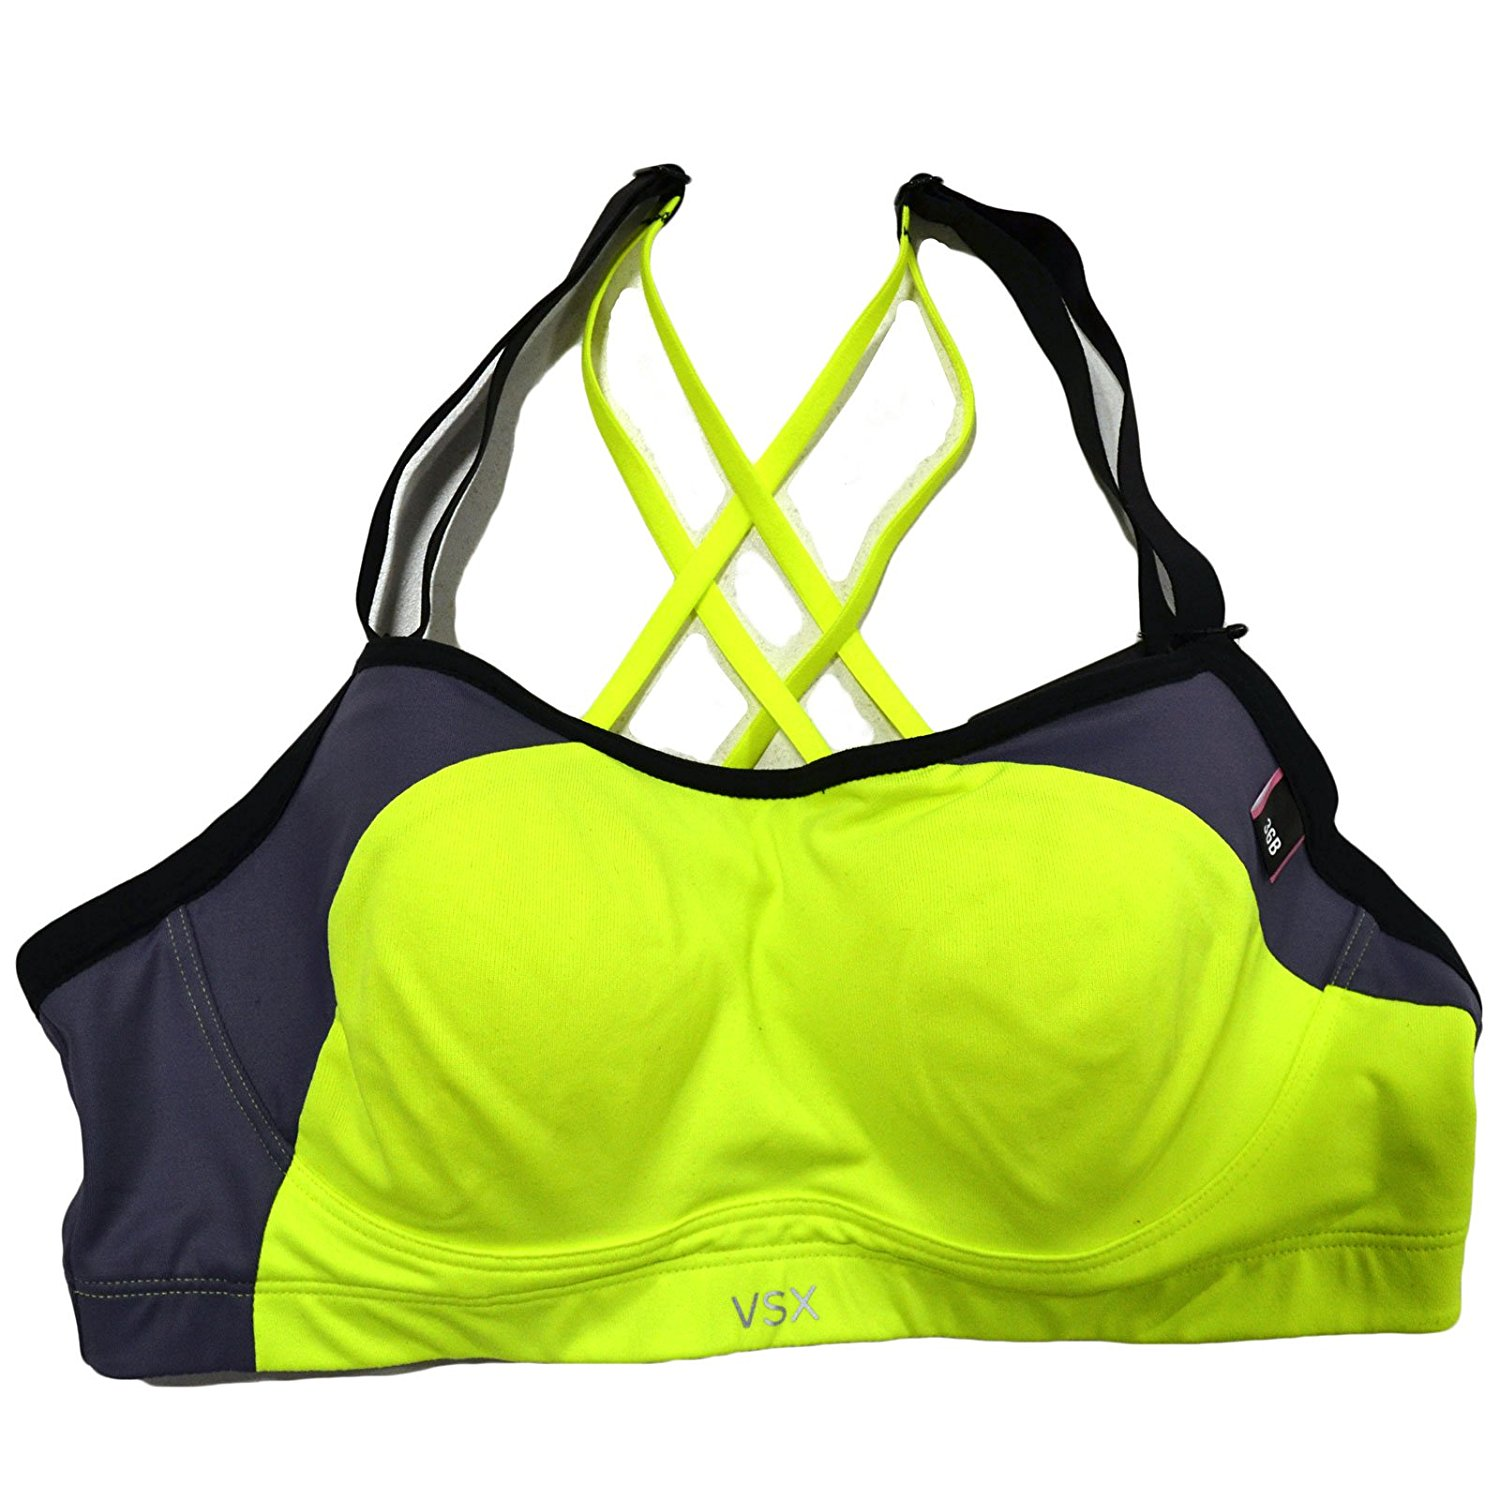 085bb2b2a5 Get Quotations · Victoria s Secret VSX The Angel Sports Bra in Neon Yellow